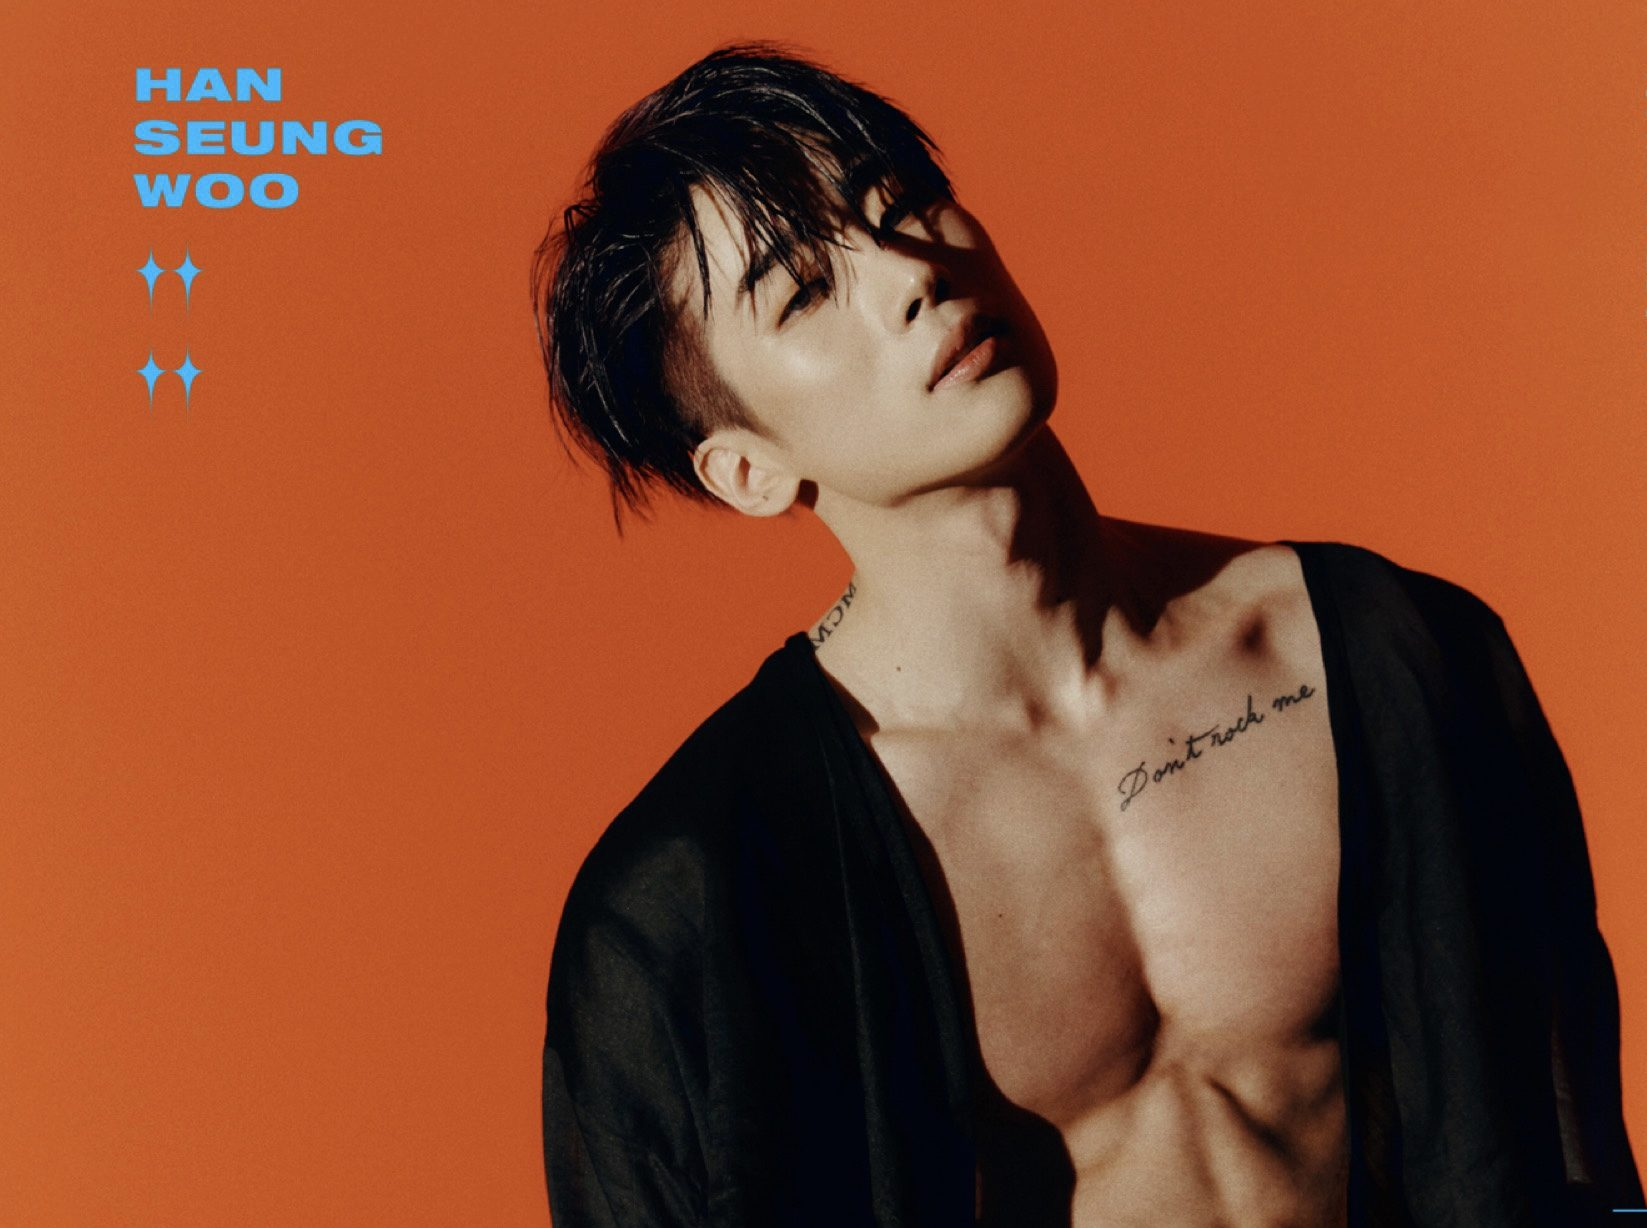 """VICTON's Han Seung Woo Stuns With A Bold Music Video For His Track """"Sacrifice"""""""